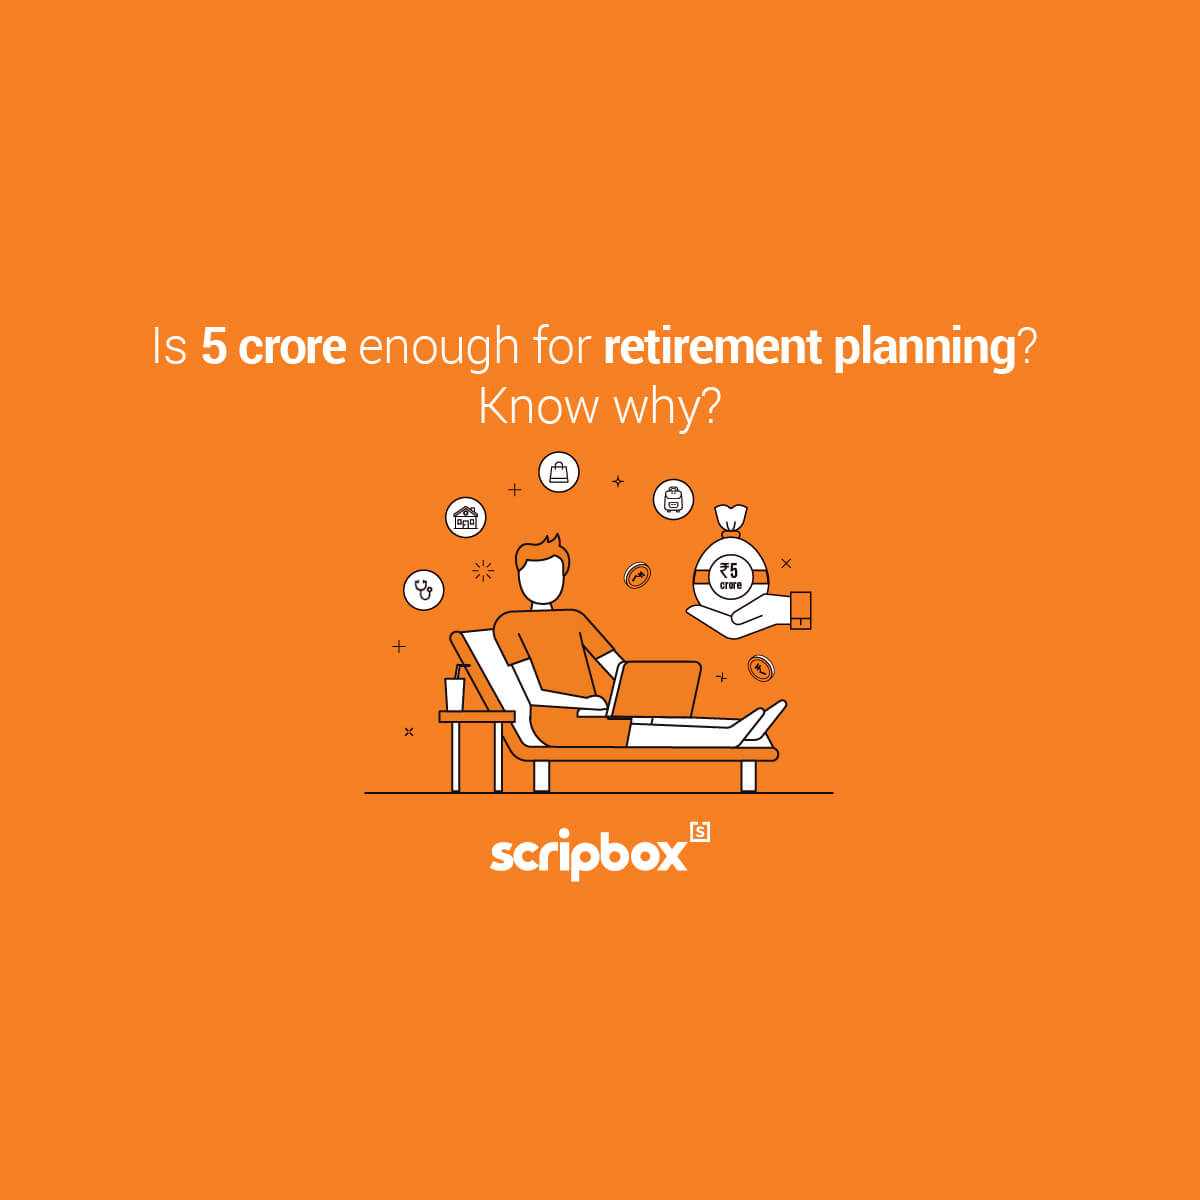 is 5 crore enough for retirement planning